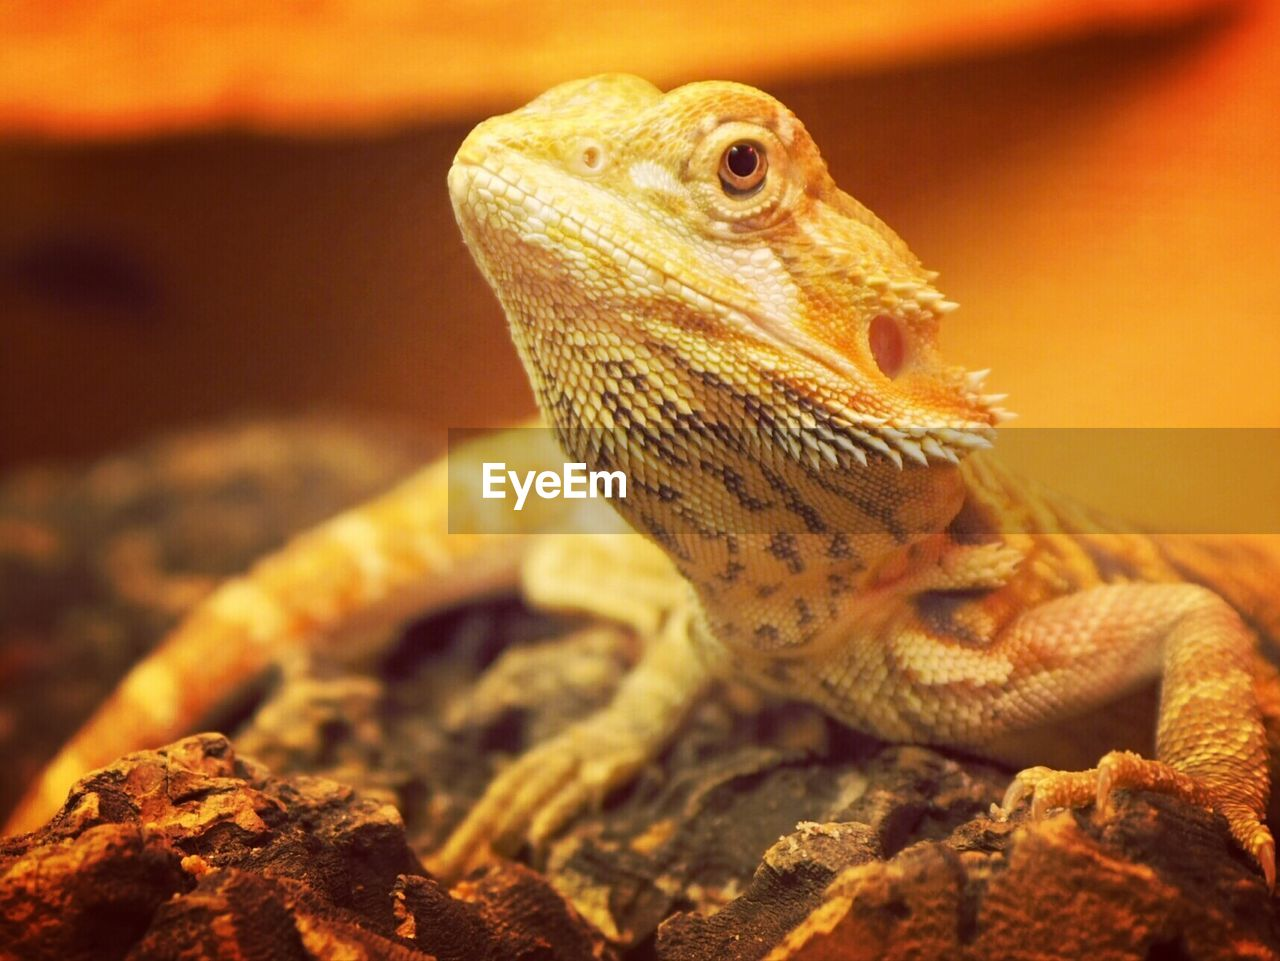 animal themes, animal, one animal, animal wildlife, lizard, vertebrate, reptile, animals in the wild, close-up, bearded dragon, no people, focus on foreground, orange color, looking away, nature, animal body part, indoors, looking, selective focus, animal head, animal scale, animal eye